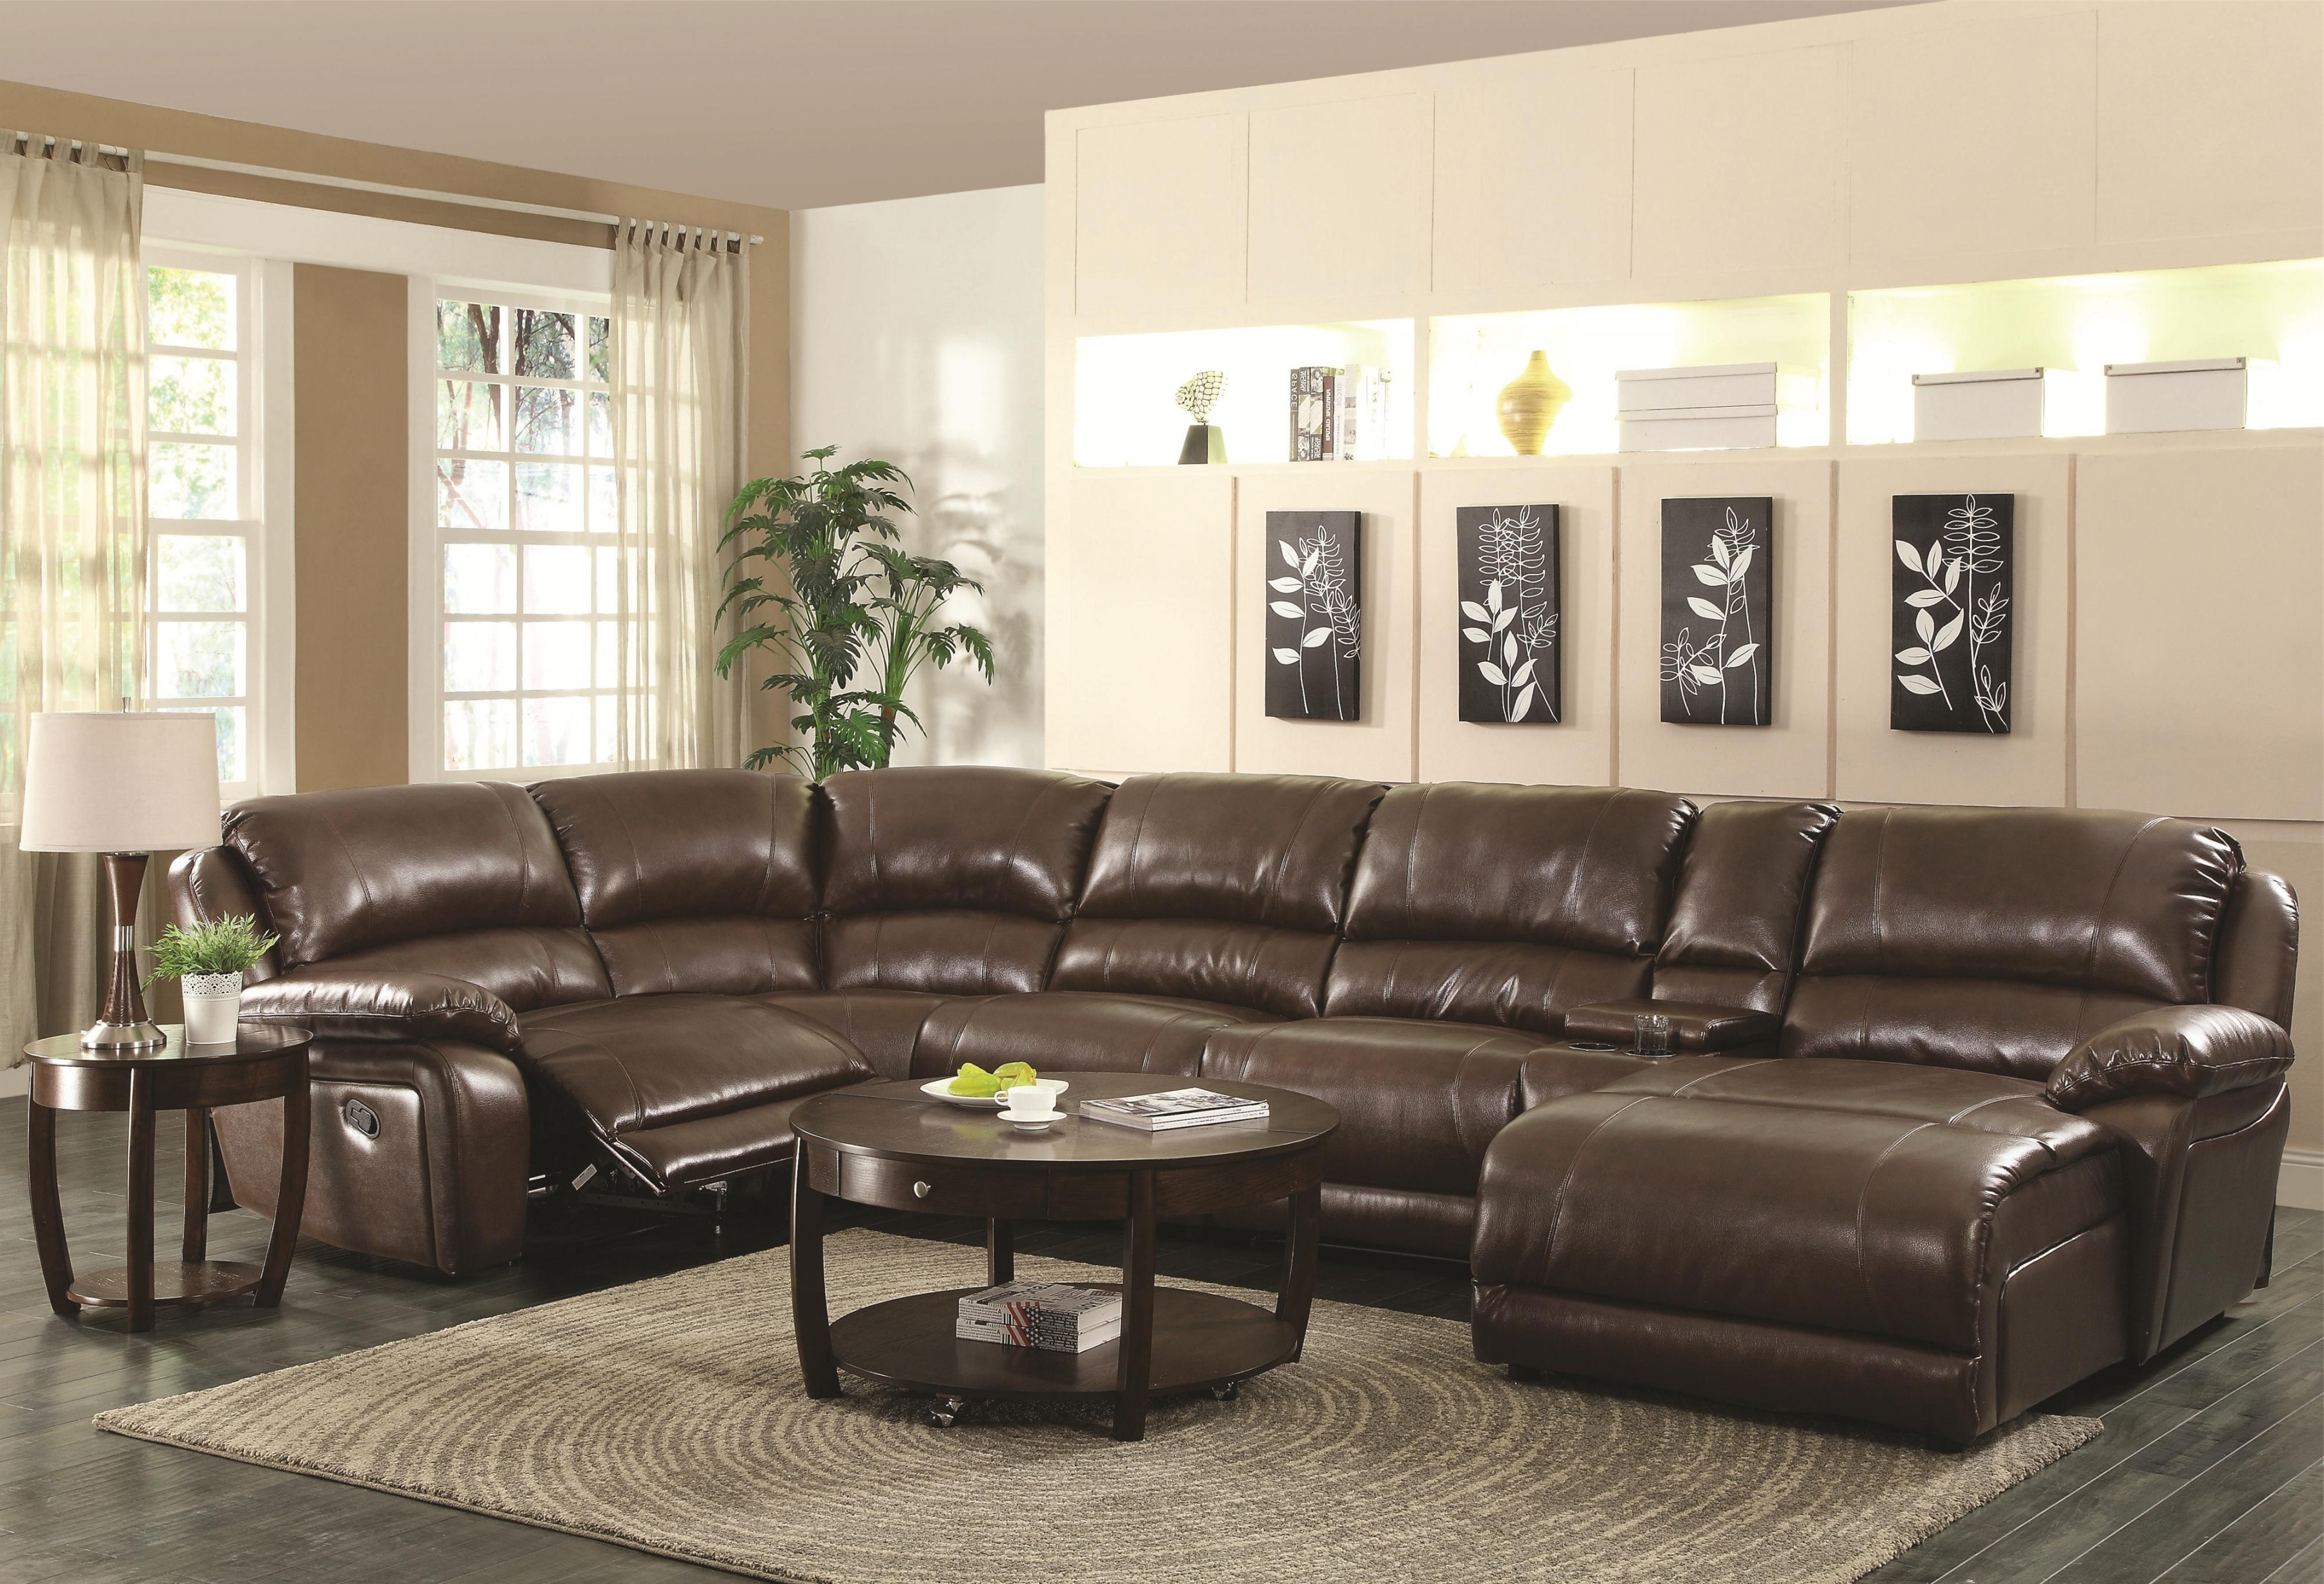 Best And Newest Home : Elegant Sectional Sofas With Recliners And Chaise Home In Elegant Sectional Sofas (View 12 of 15)